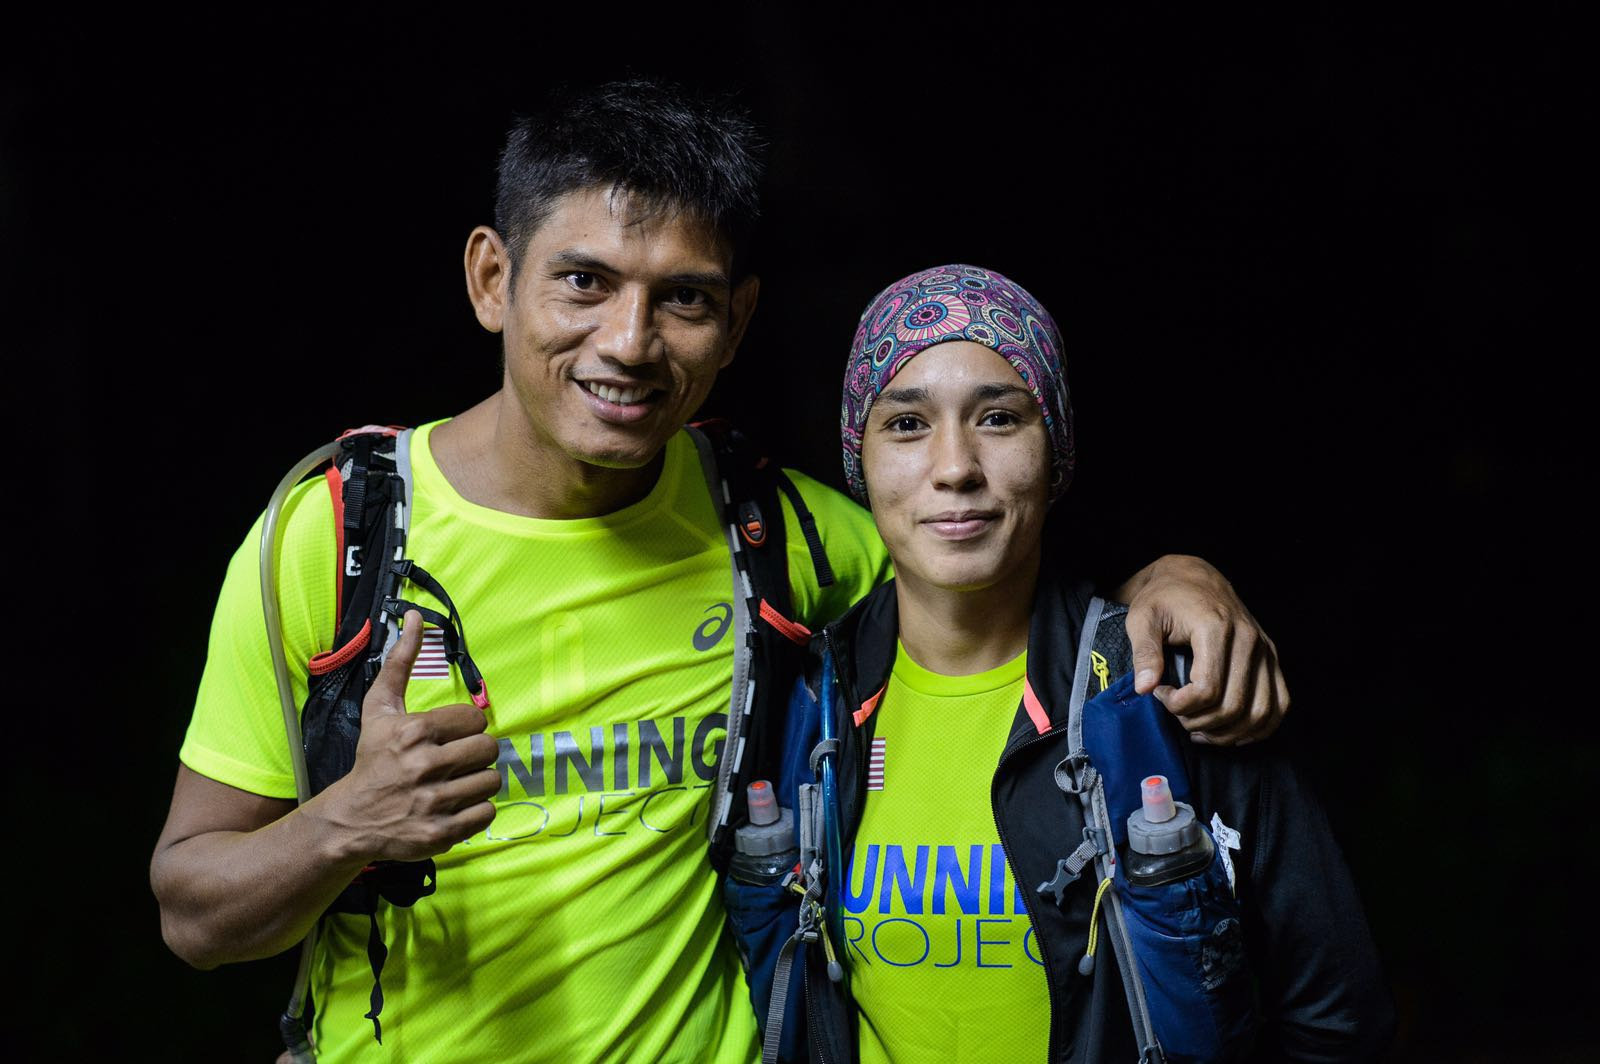 Abdul Rahman and Tahira Najmunisaa both are part of the Running Project Team